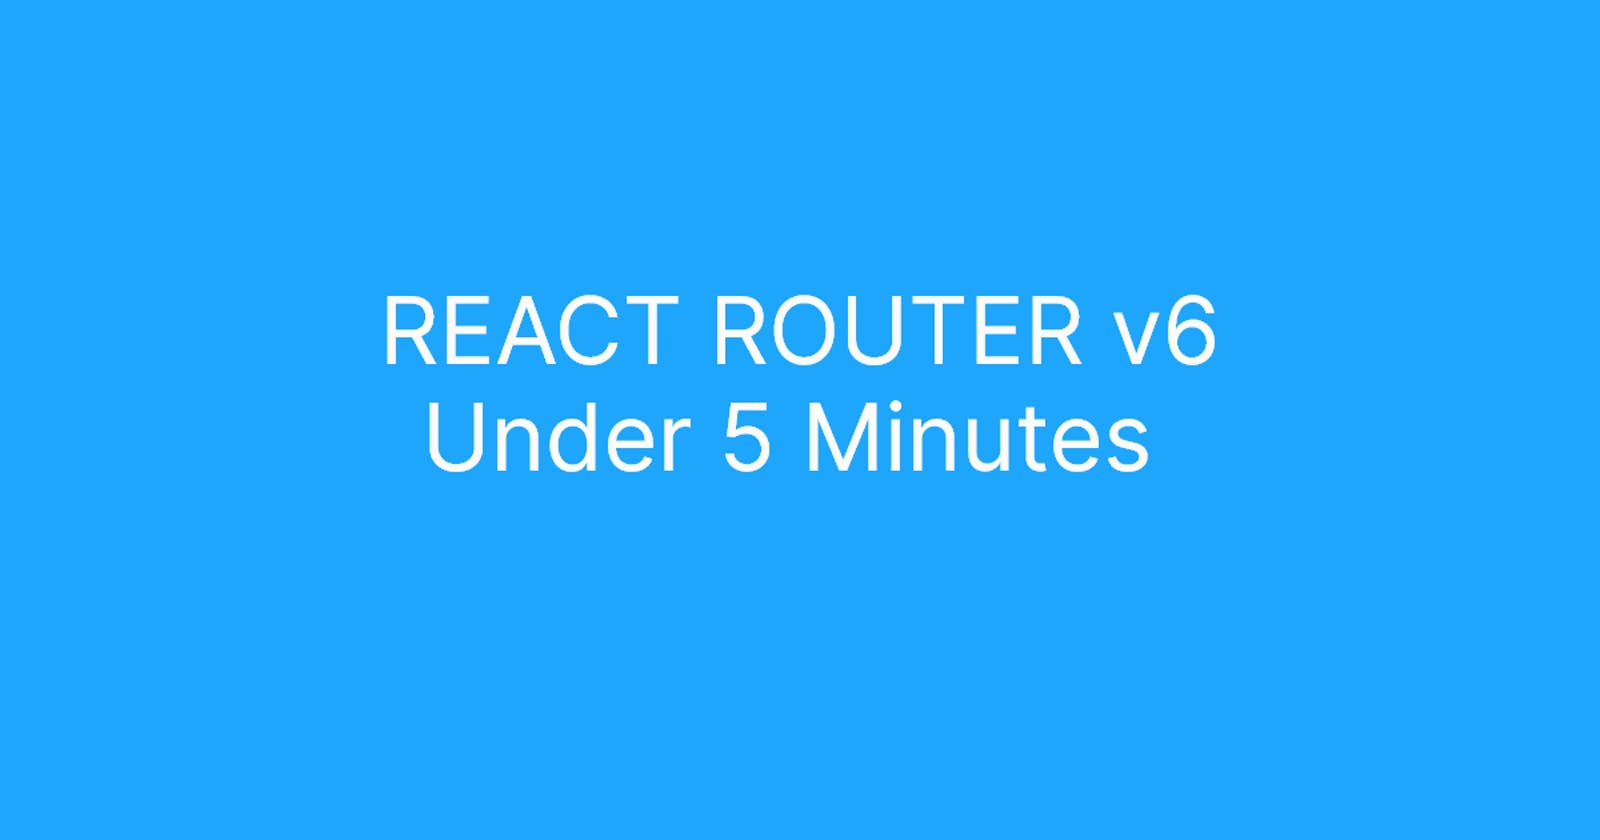 A comprehensive guide for React Router v6.